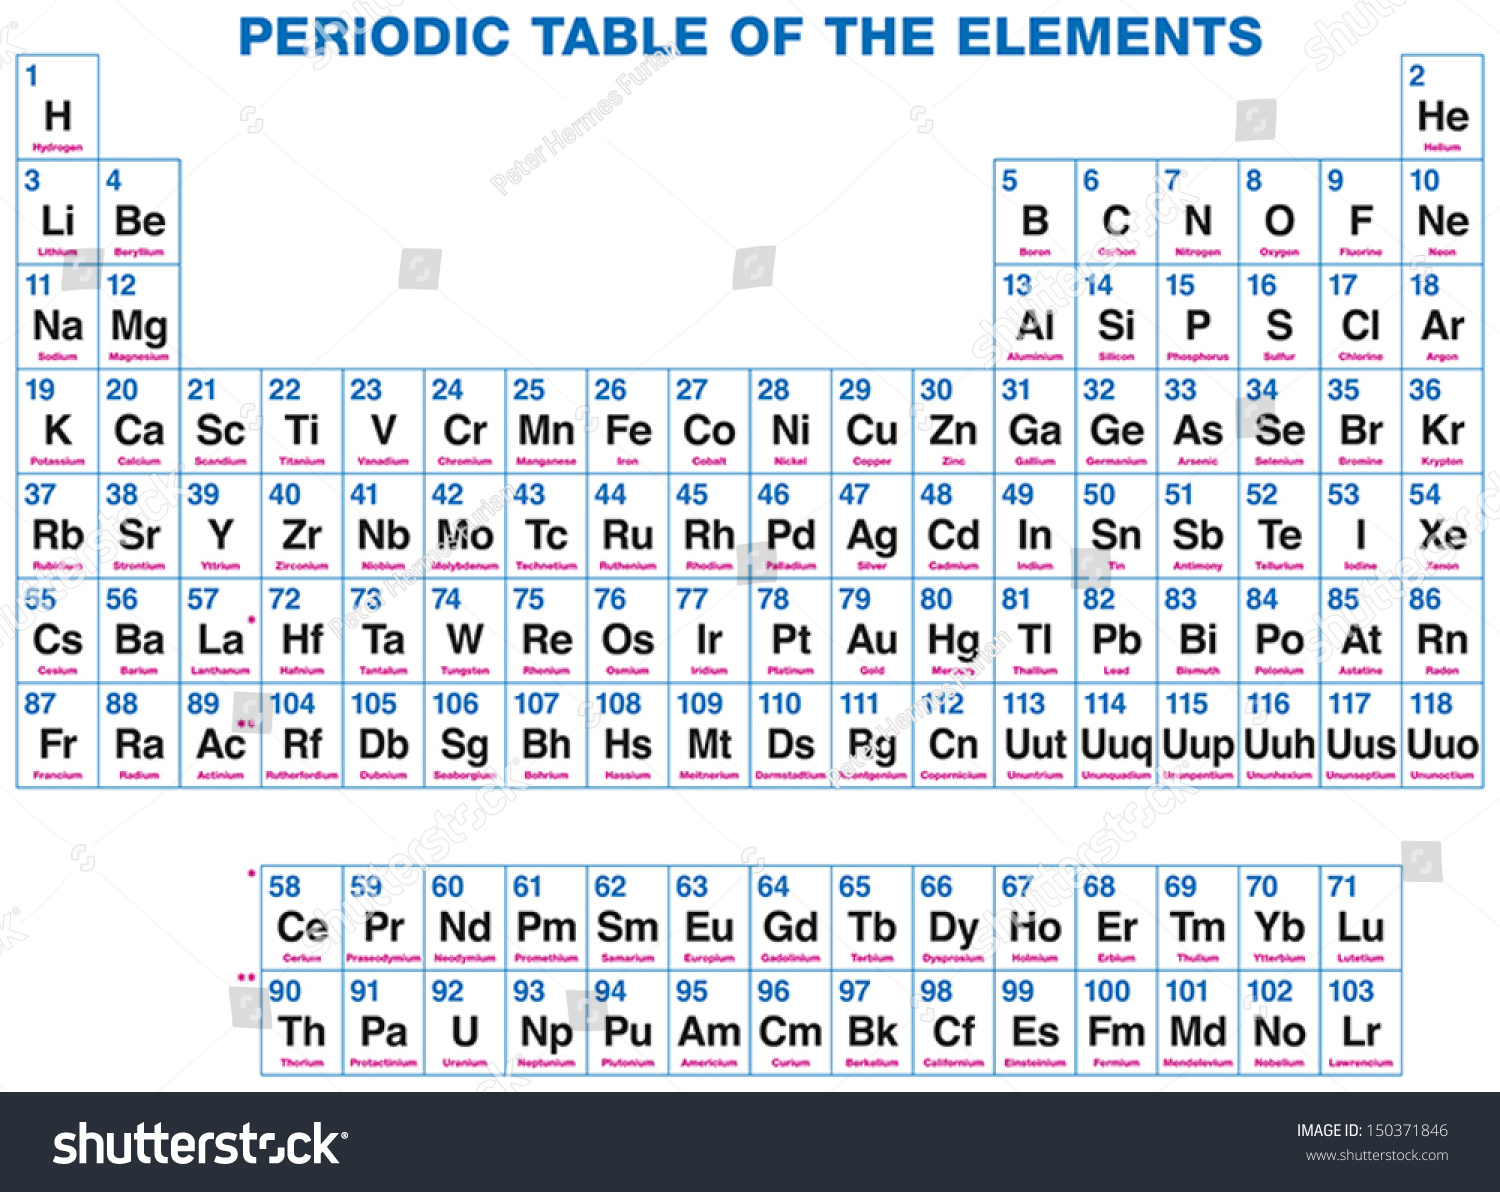 Sb symbol periodic table gallery periodic table images sb symbol periodic table choice image periodic table images periodic table elements 118 chemical elements stock gamestrikefo Image collections